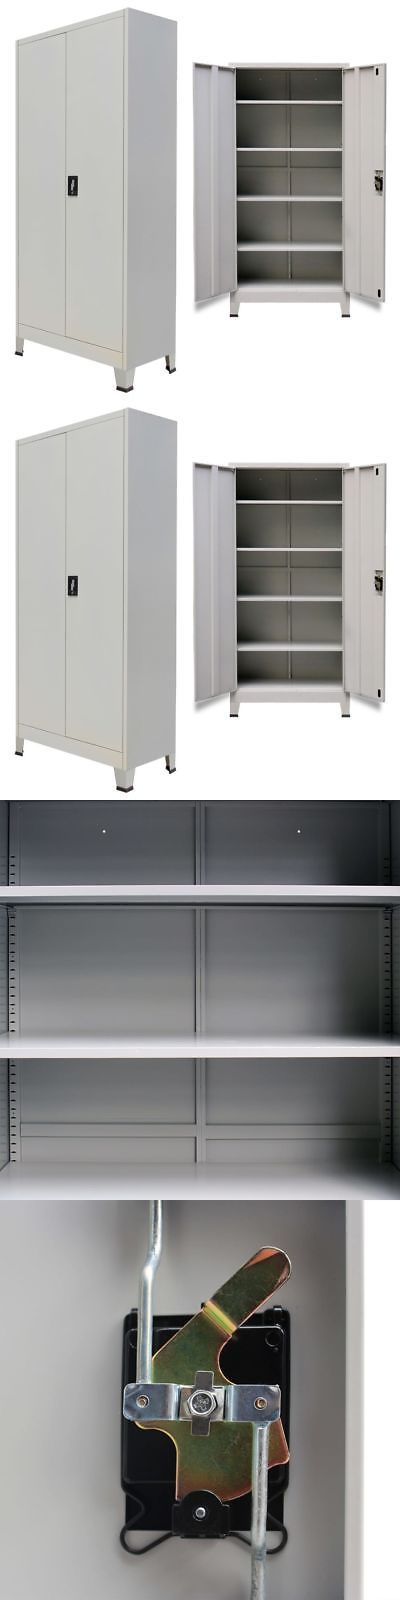 Cabinets And Cupboards 20487 Vidaxl Office Filing Cabinet Locker 2 Door Steel File Organizer Storage Cupboard Buy I Home Office Filing Cabinet Filing Cabinet Locker Storage